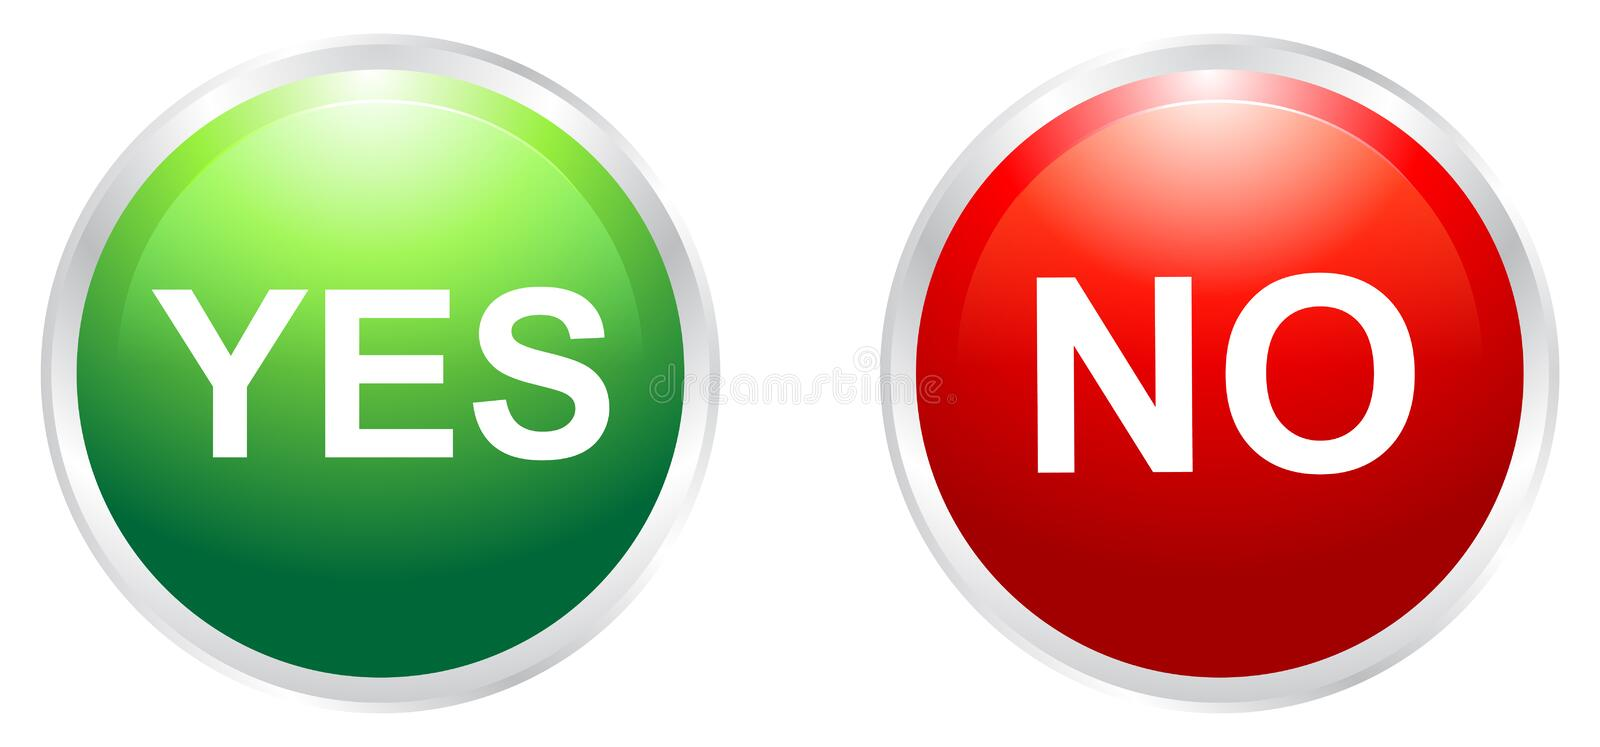 Yes And No Buttons Royalty Free Stock Photo - Image: 32041705